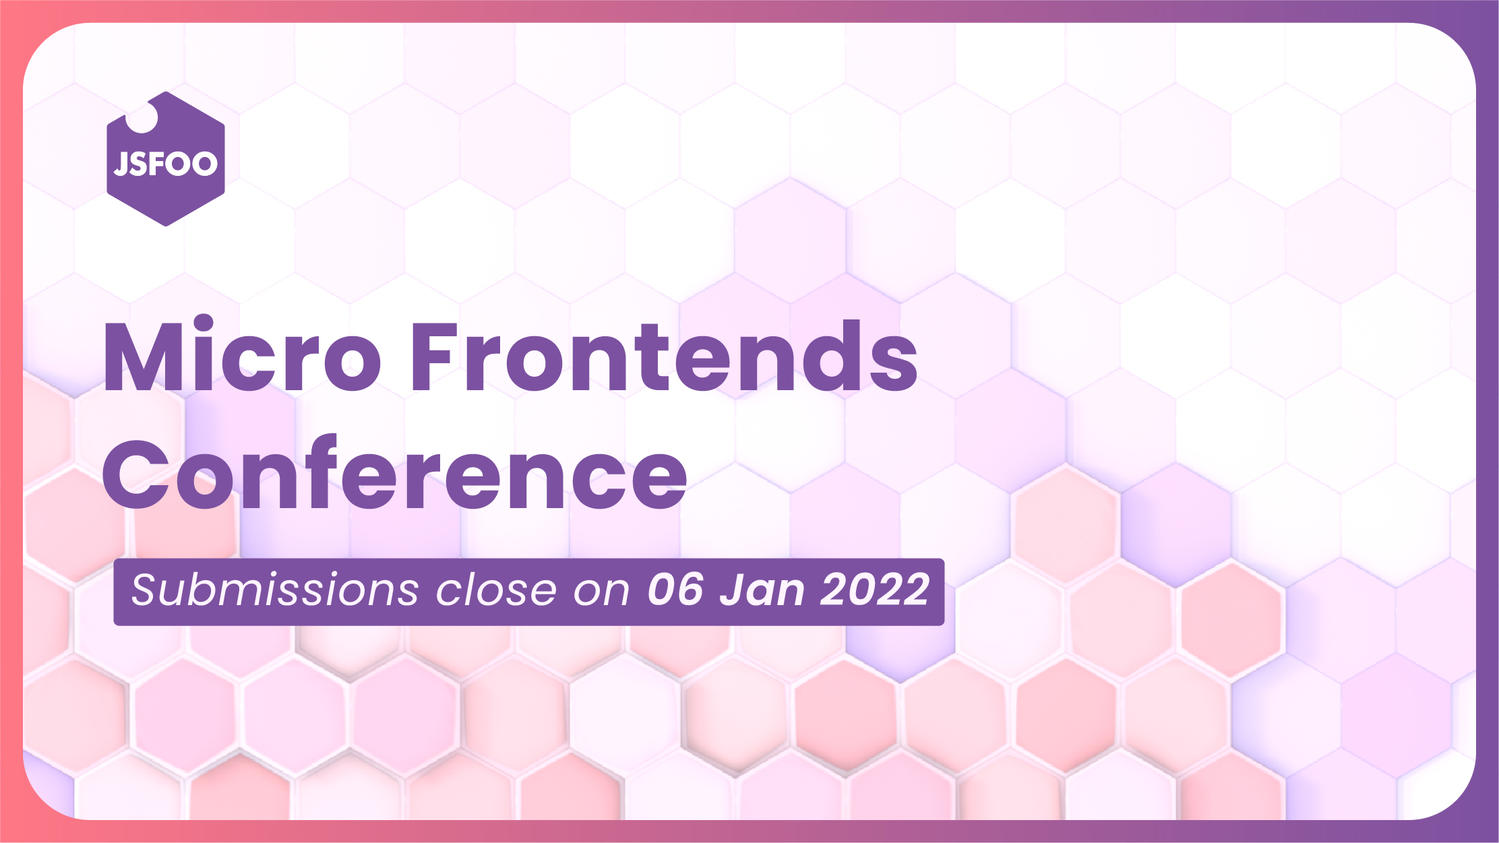 Micro Frontends Conference